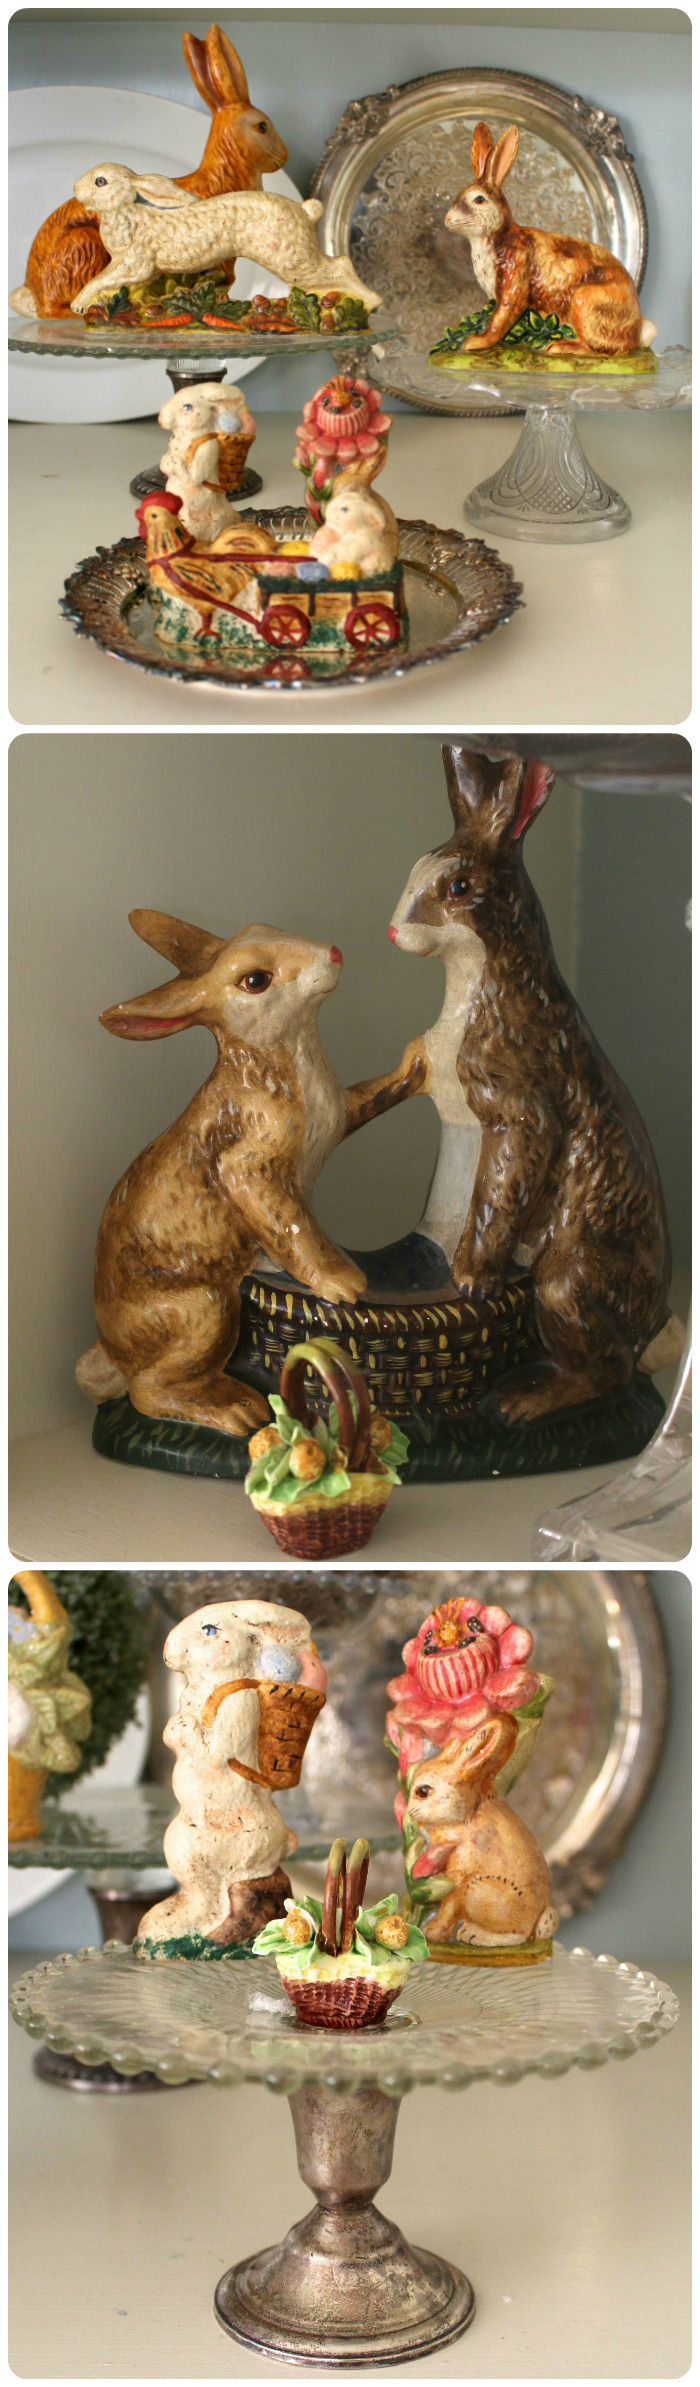 Vaillancourt Bunnies At Vintage American Home Triple Bunny Stitch